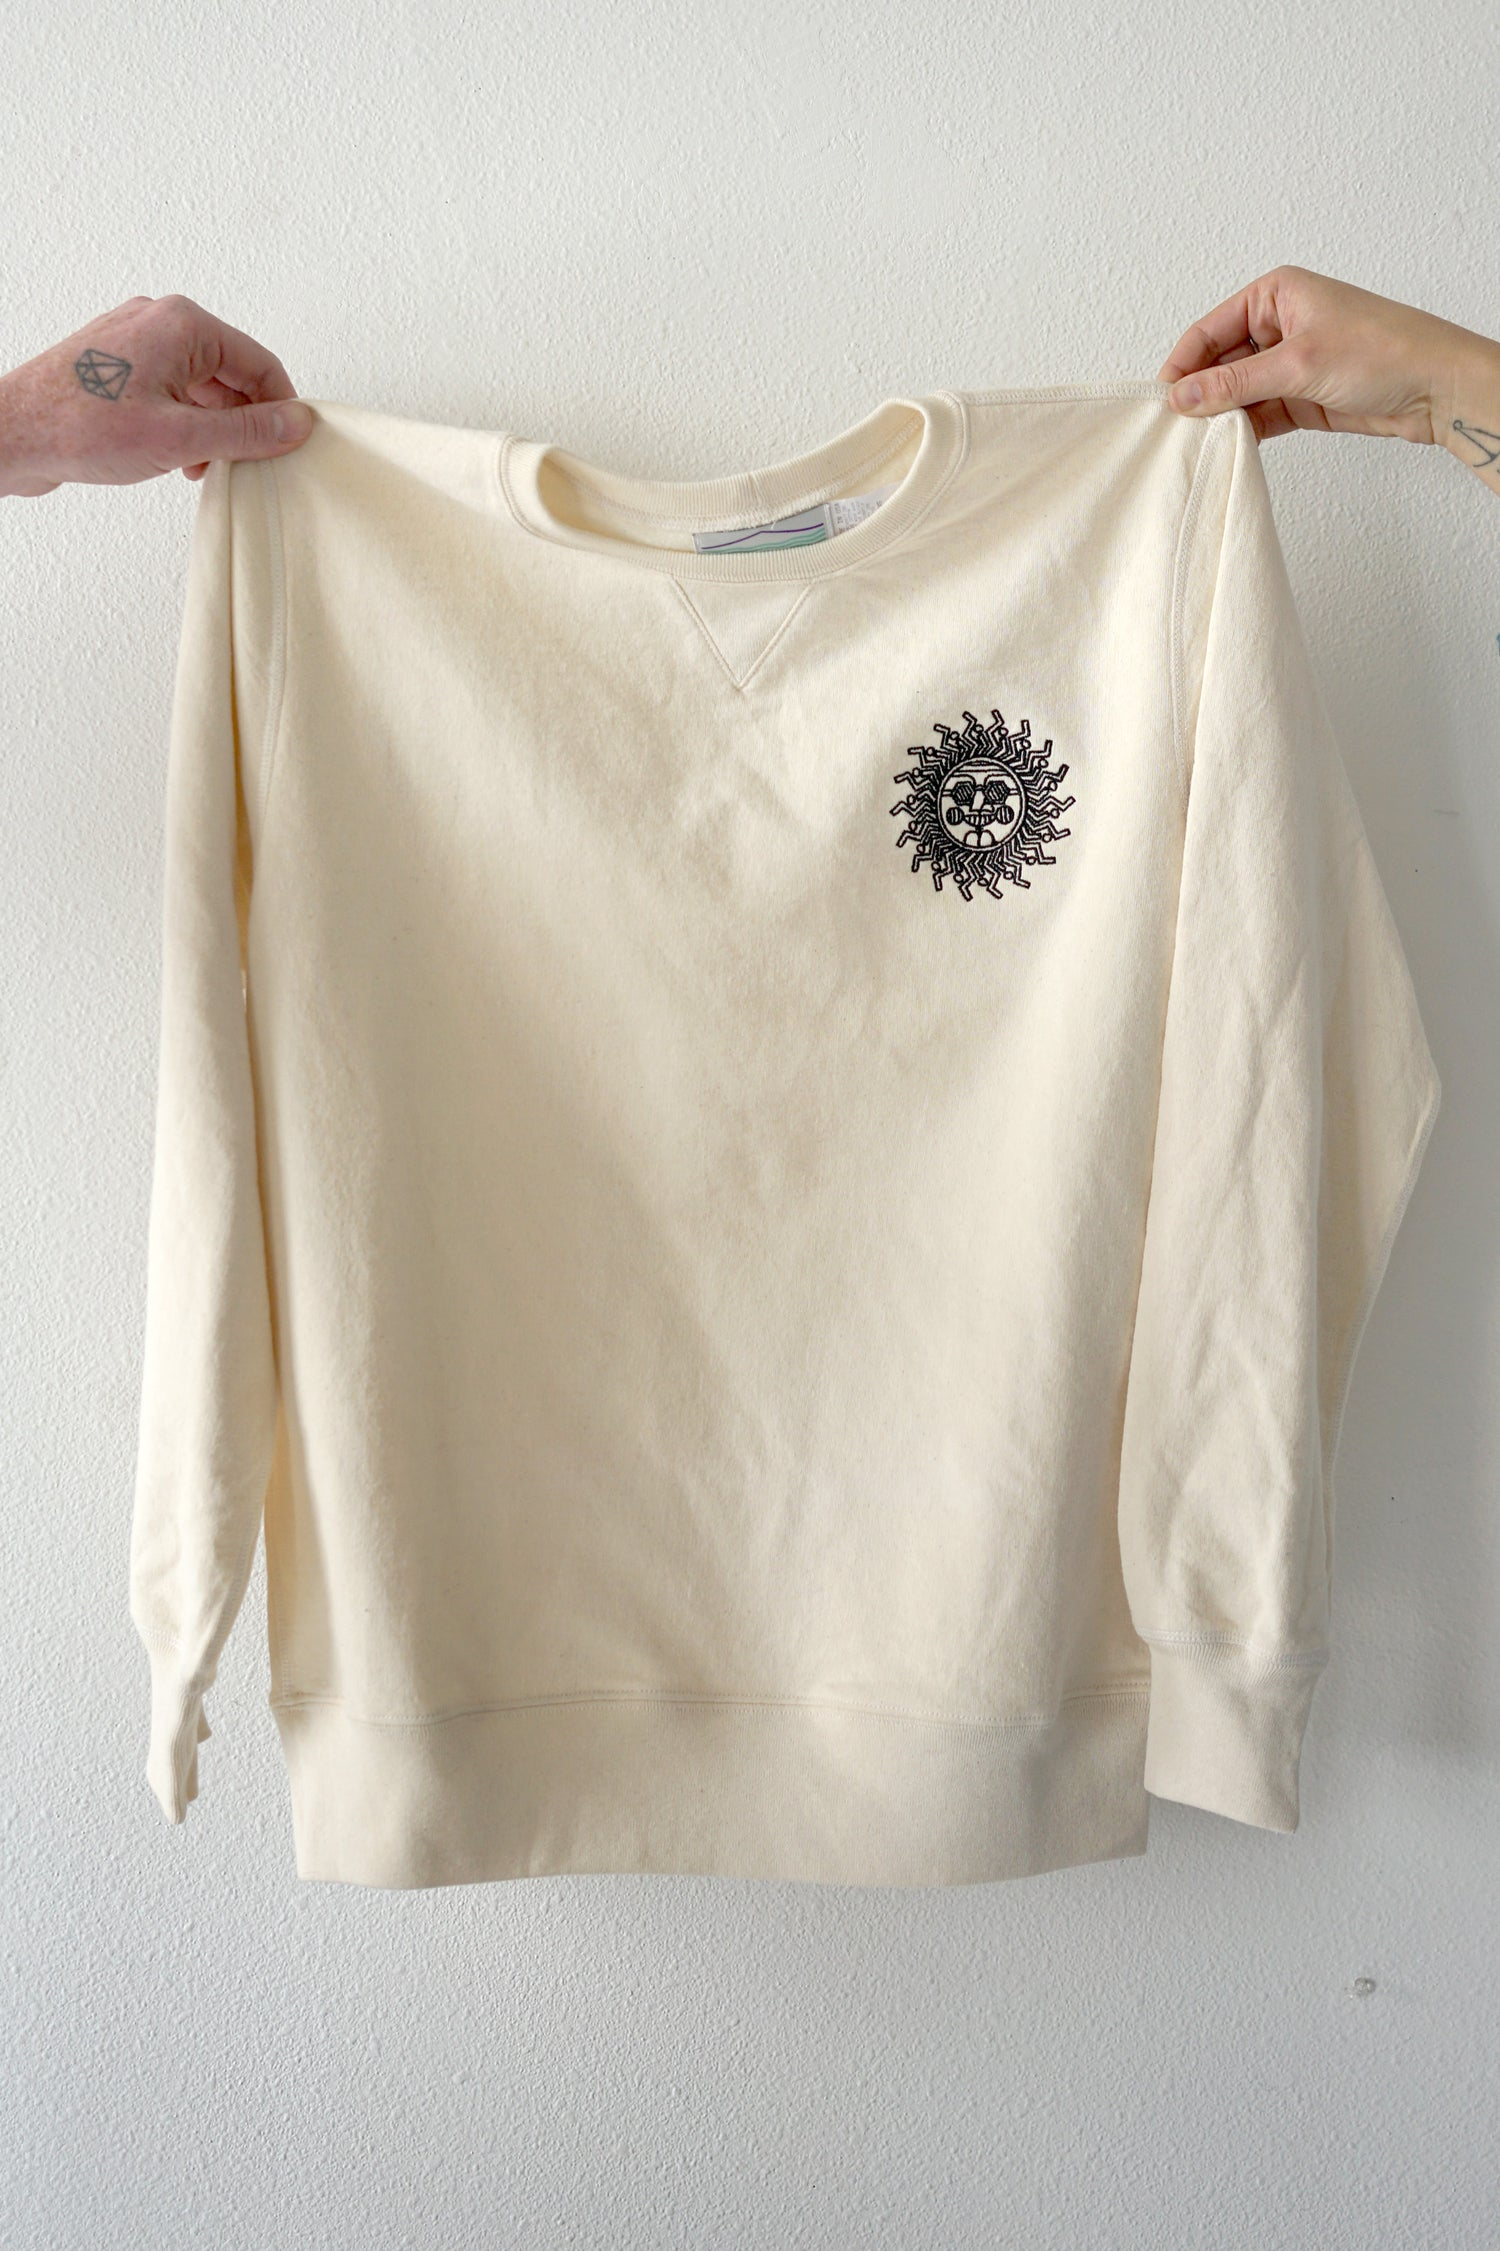 Image of Sun Sweatshirt in Off-white